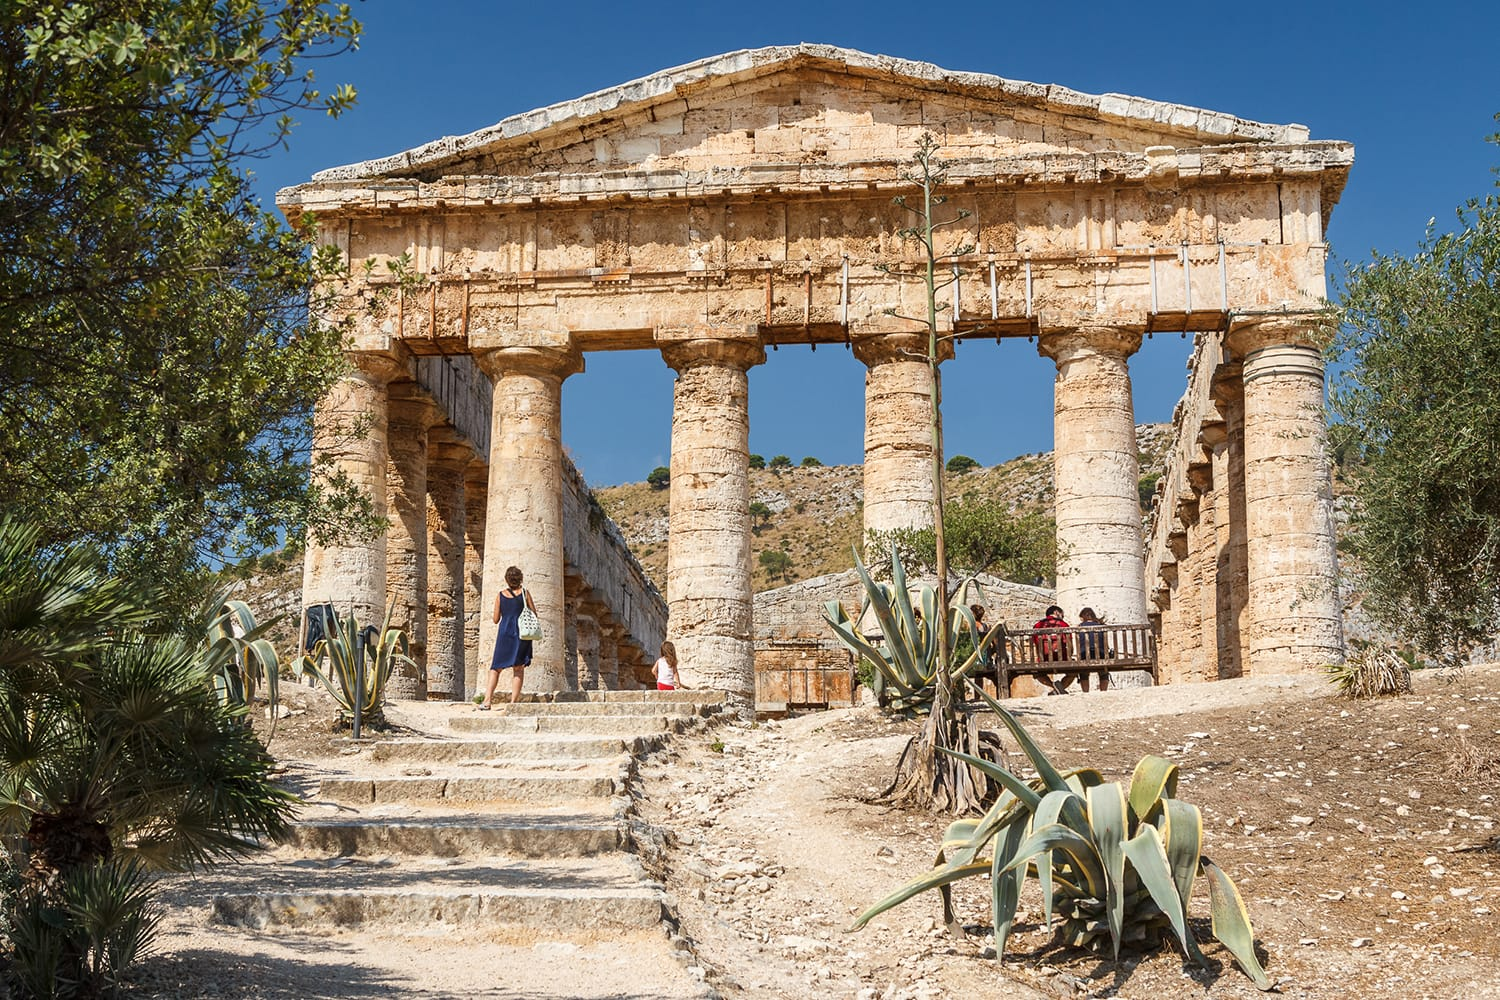 Greek temple in the ruins of the ancient city of Segesta, Sicily, Italy